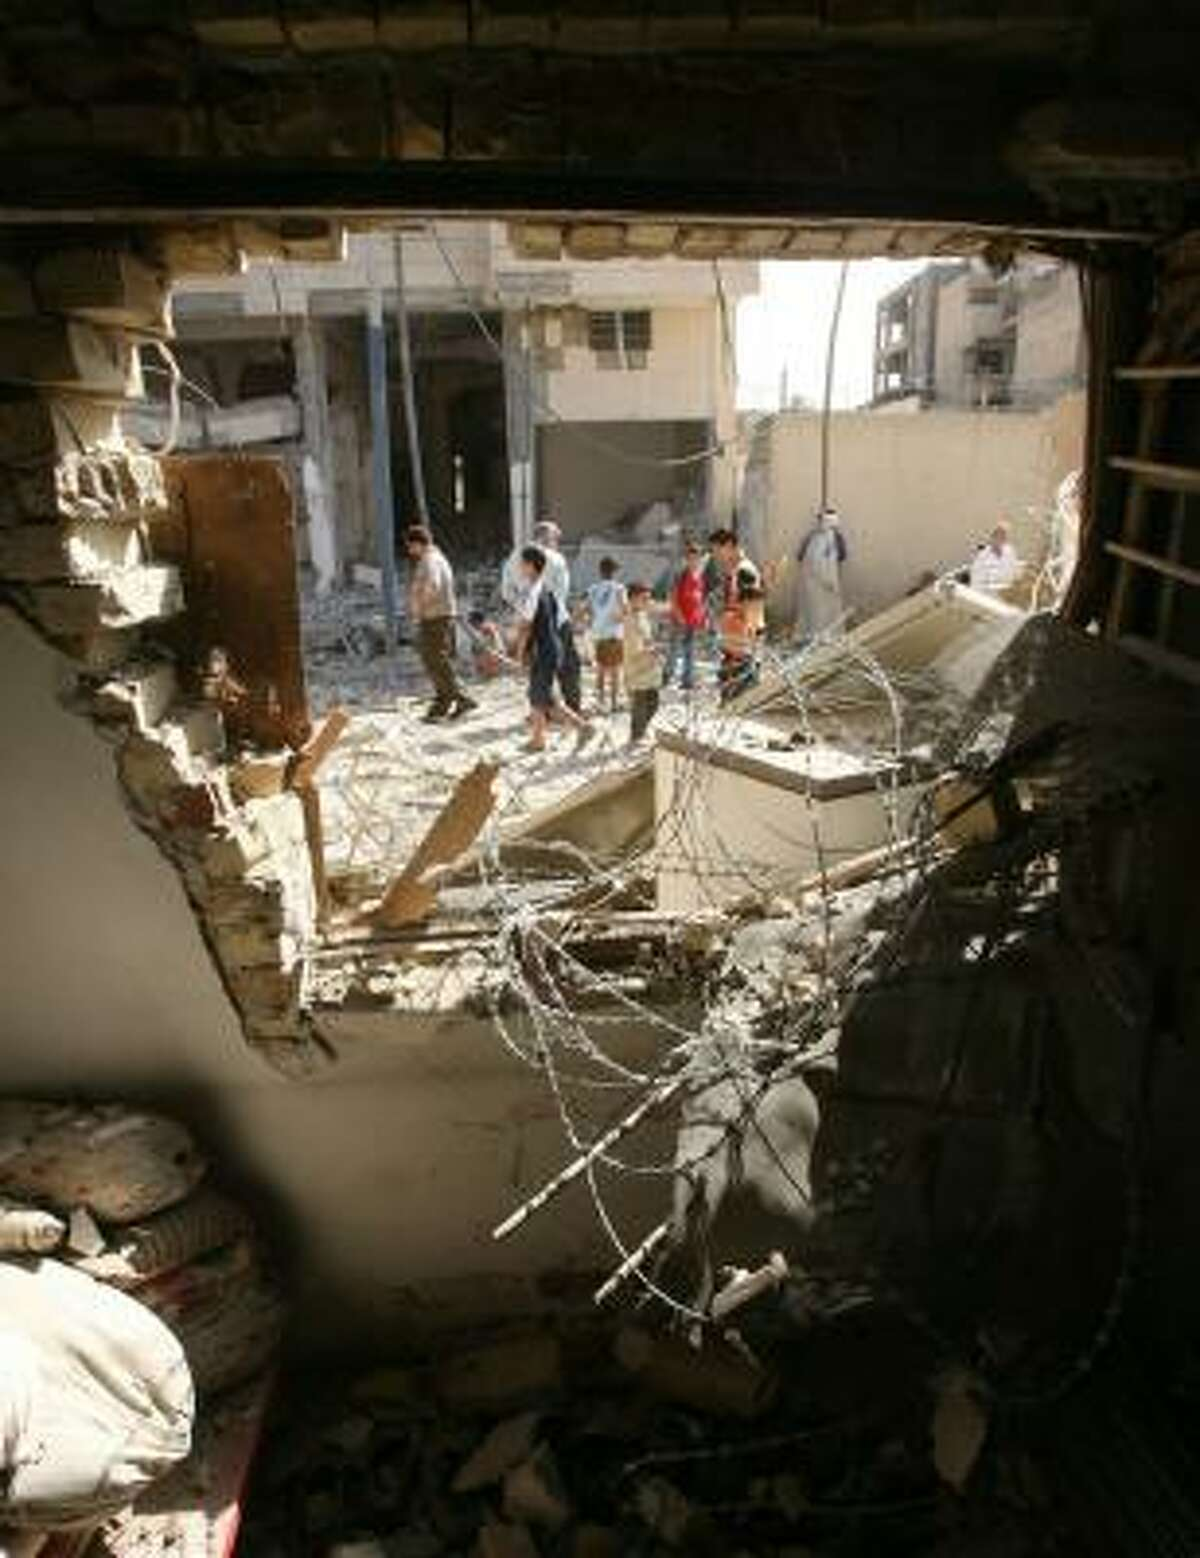 Framed by a hole in a building, Iraqis walk Thursday through rubble left from an overnight raid by U.S. troops in the Azamiyah neighborhood of Baghdad.